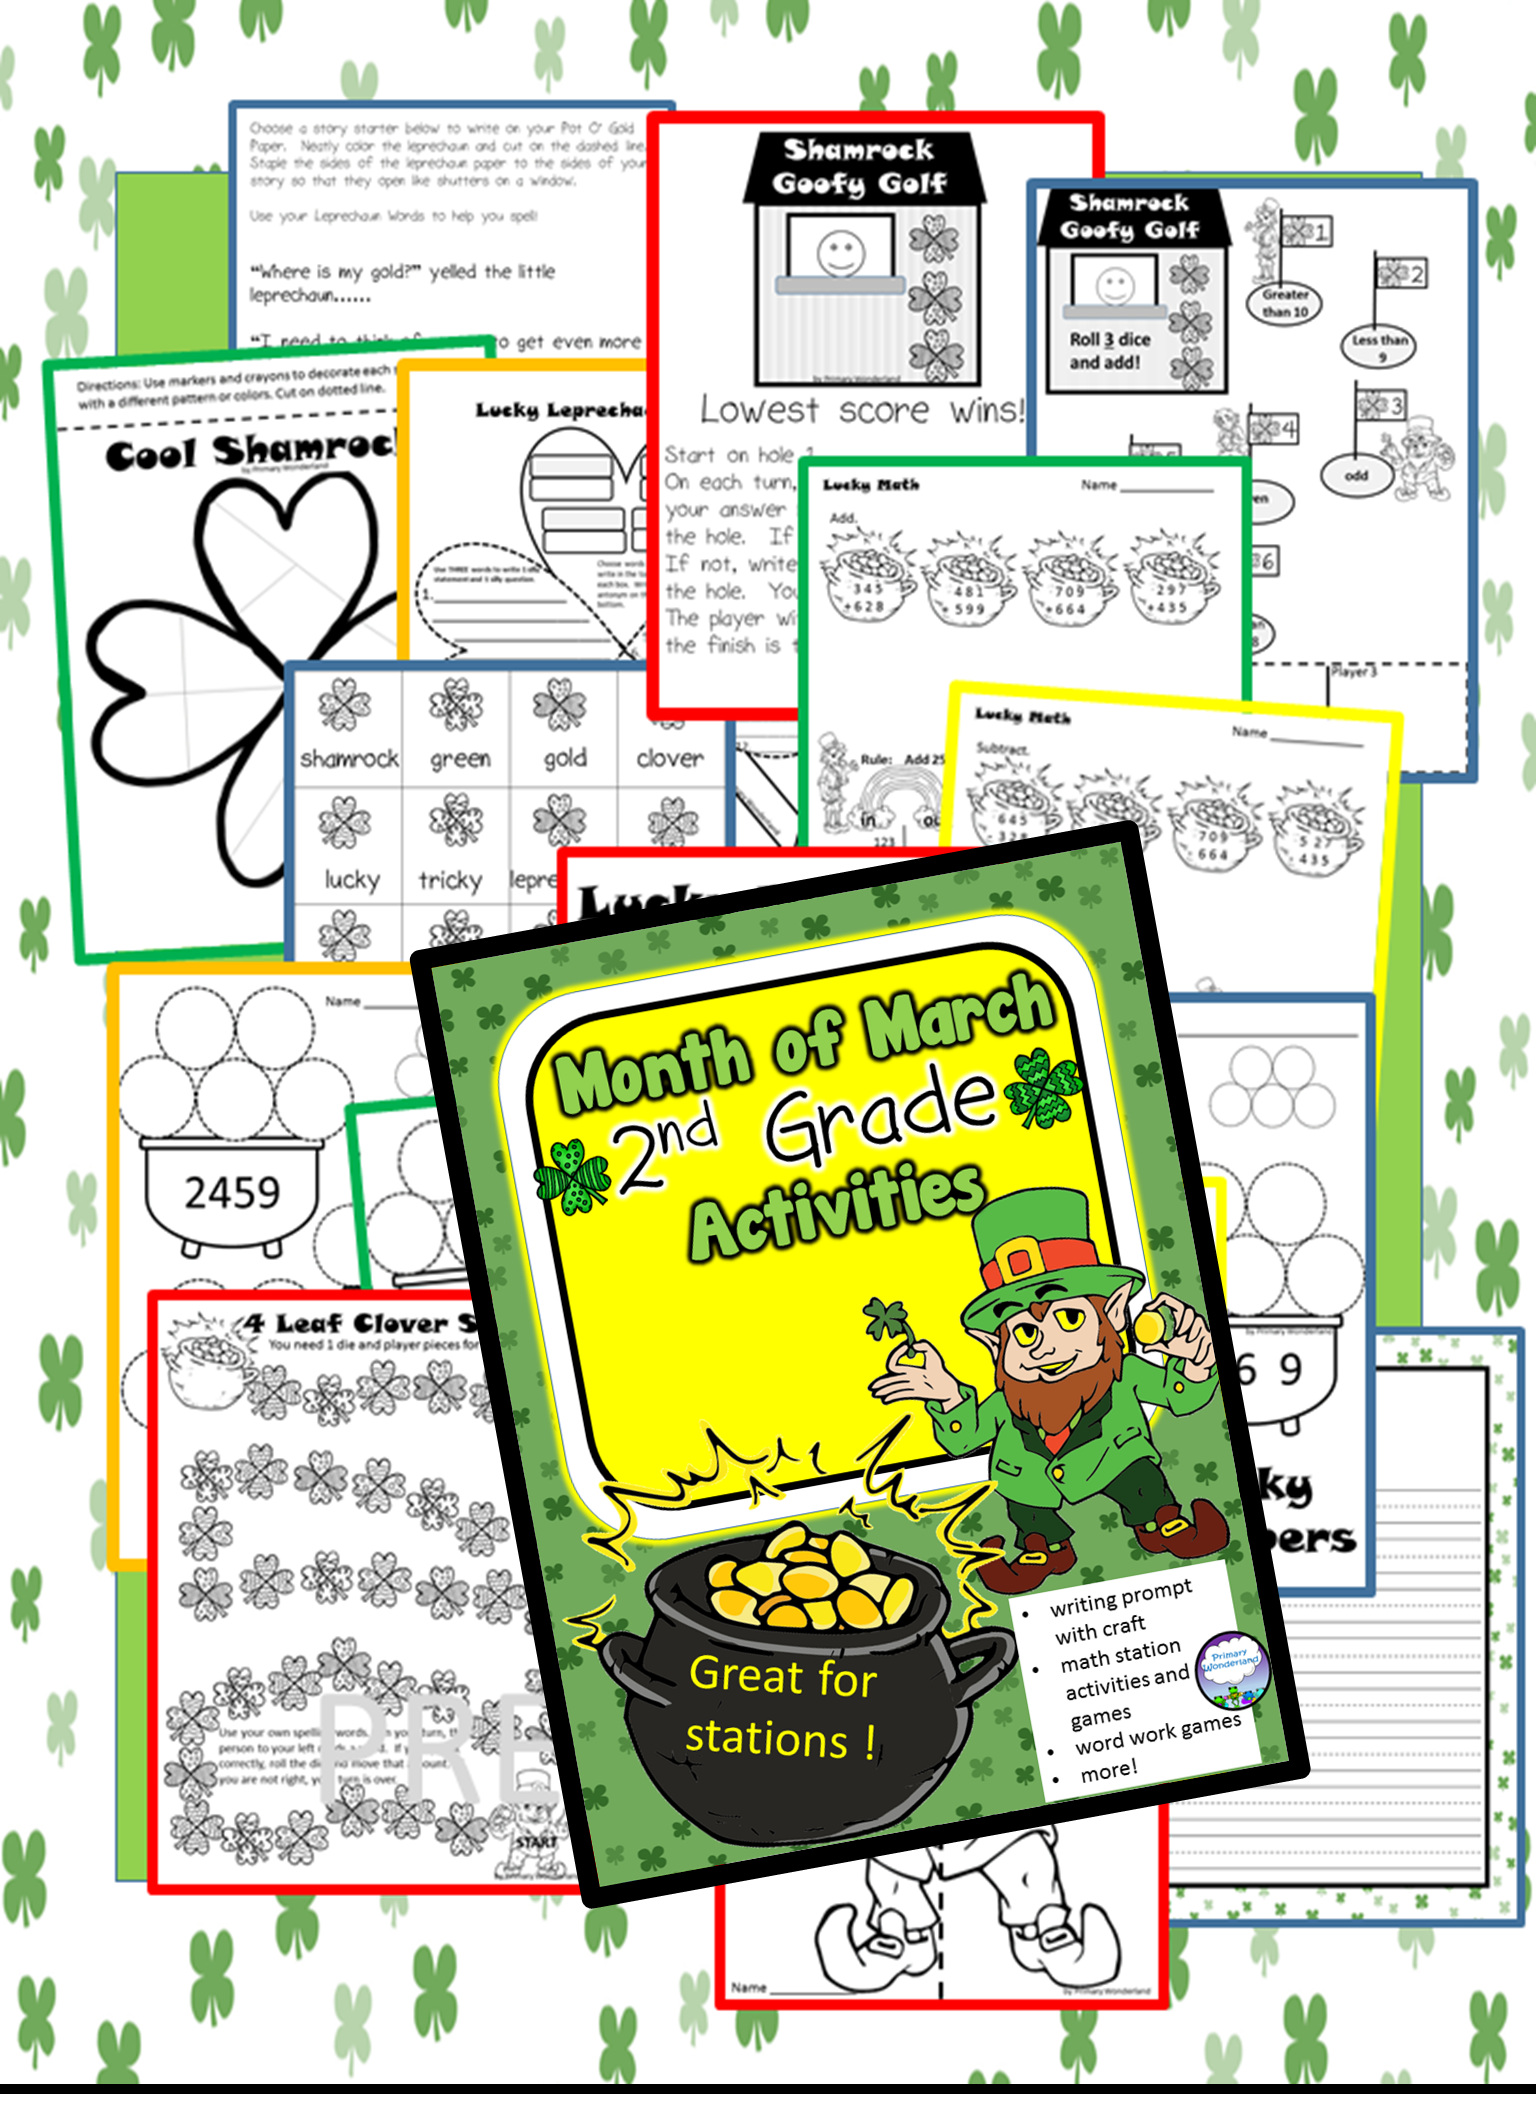 St Patrick S Day Worksheets For 2nd Grade   Printable Worksheets and  Activities for Teachers [ 2112 x 1536 Pixel ]